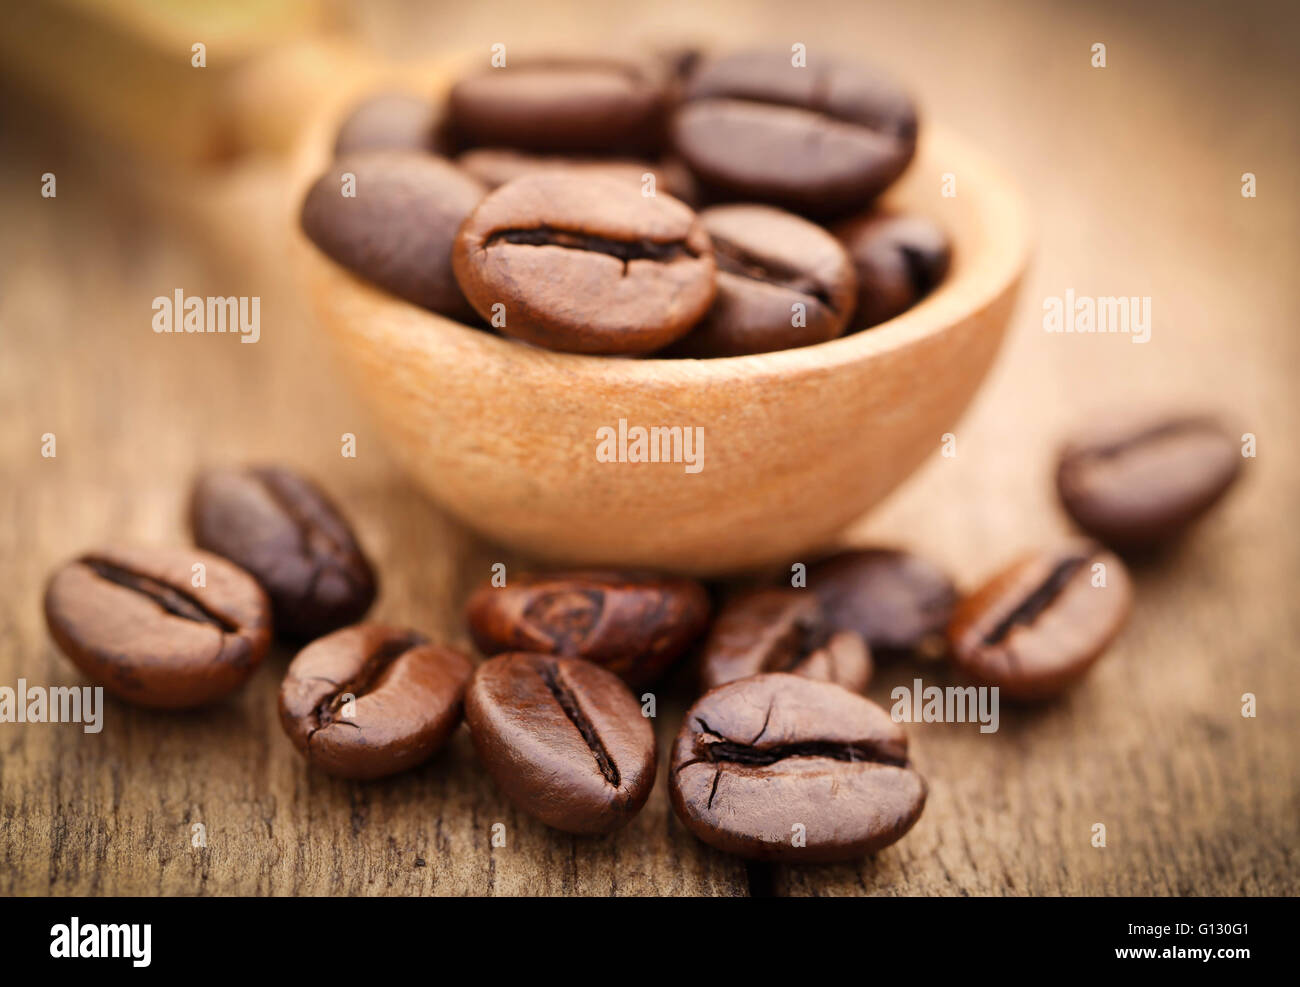 Roasted coffee bean in wooden surface - Stock Image